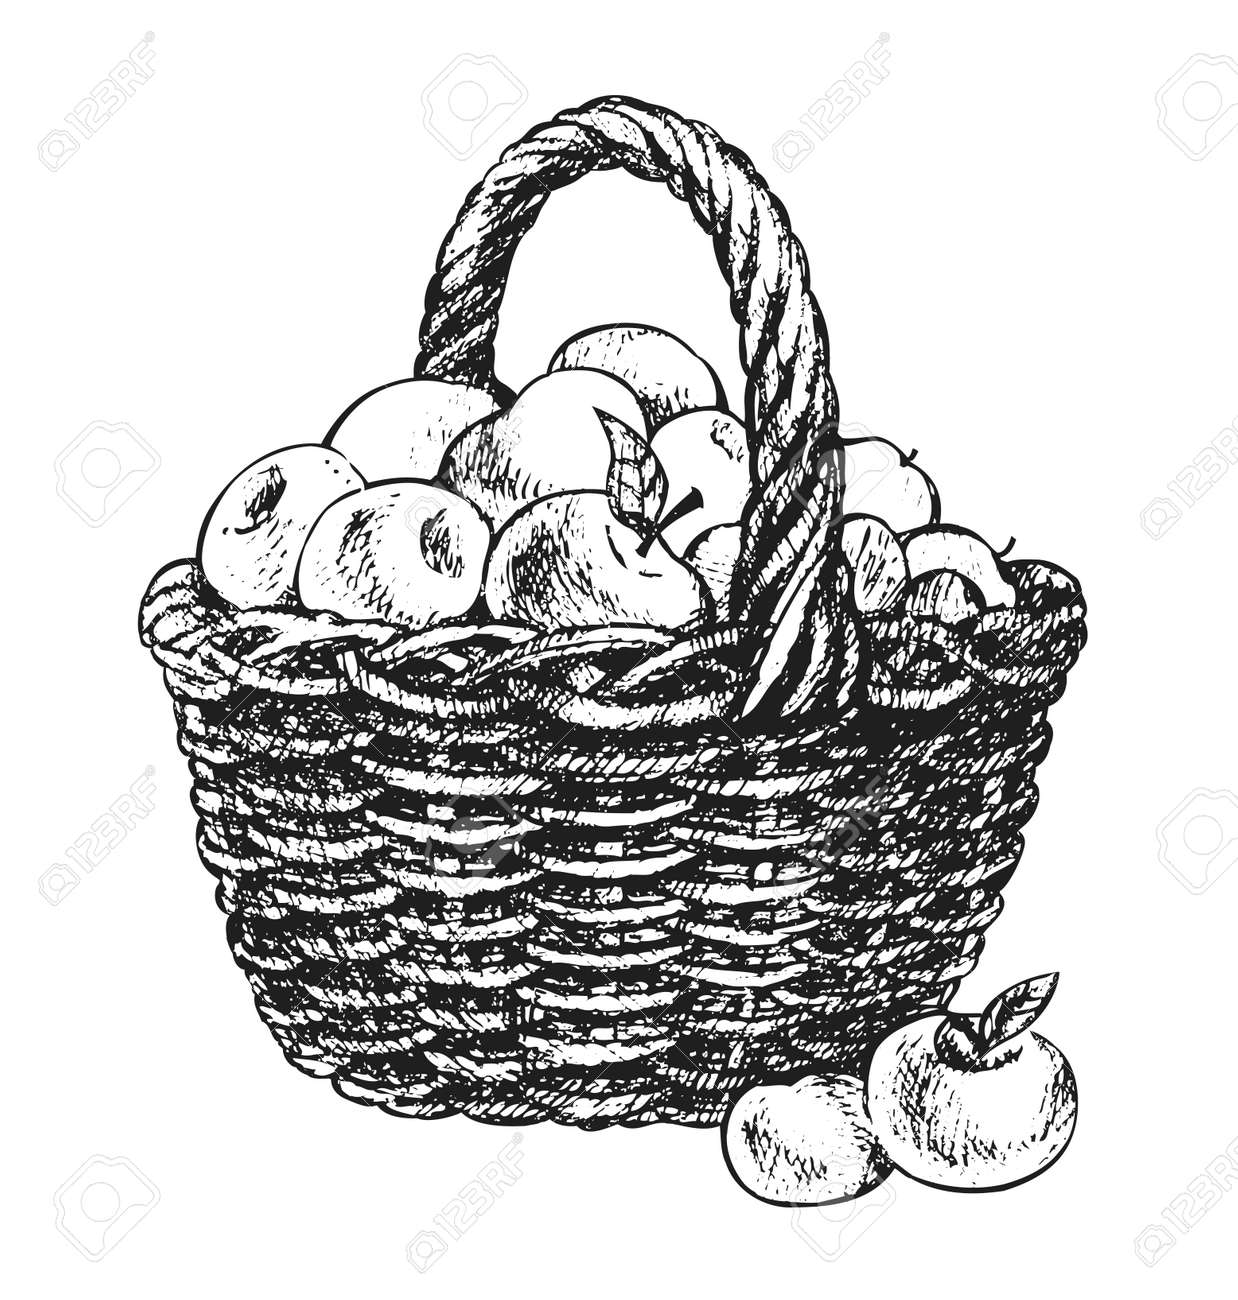 doodle picnic basket images u0026 stock pictures royalty free doodle